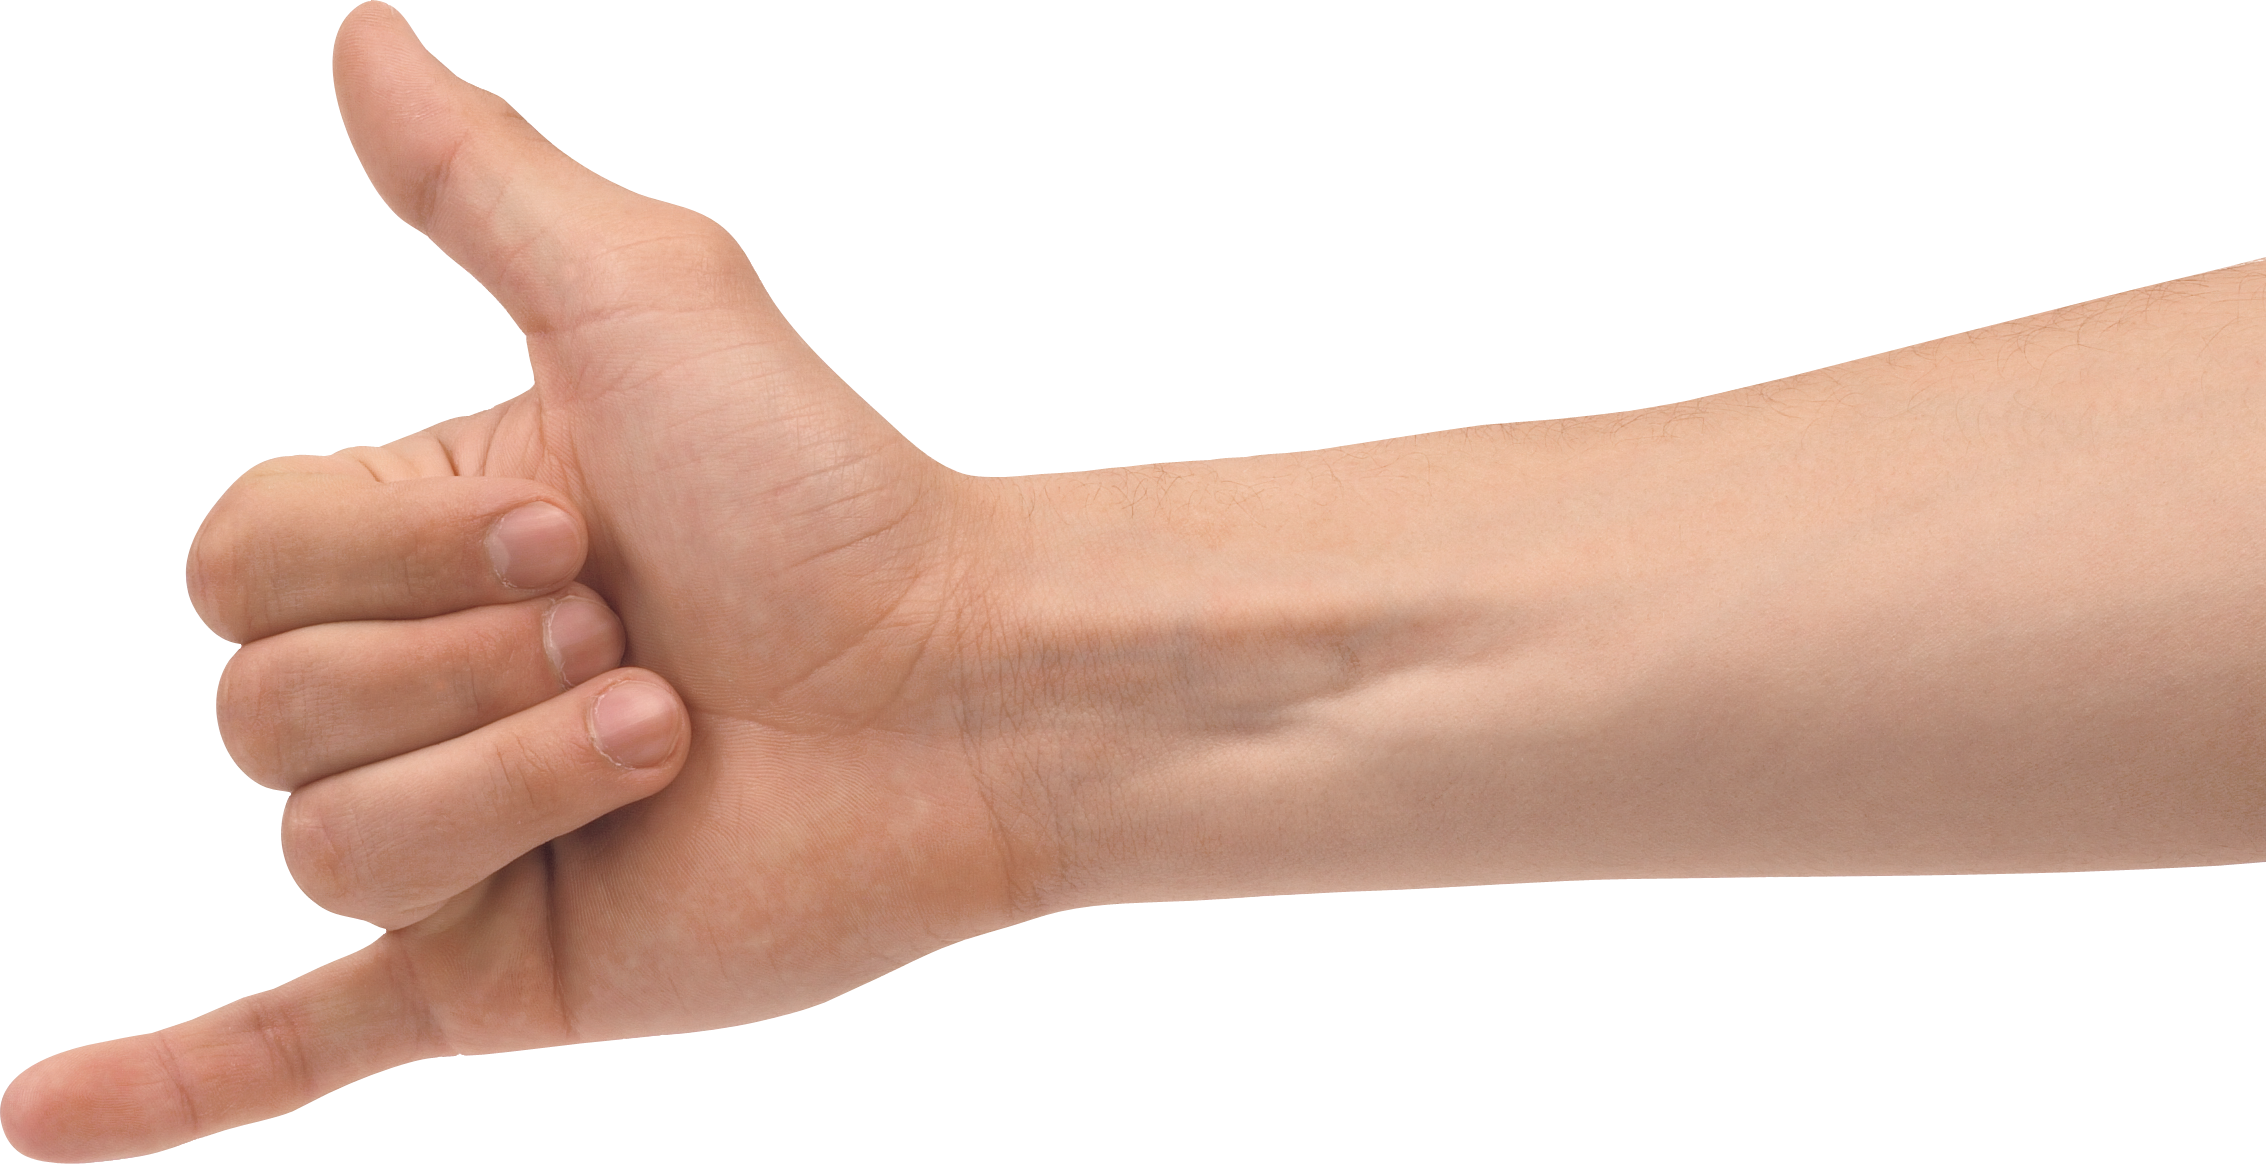 Hand clipart forearm. Hands sixty one isolated